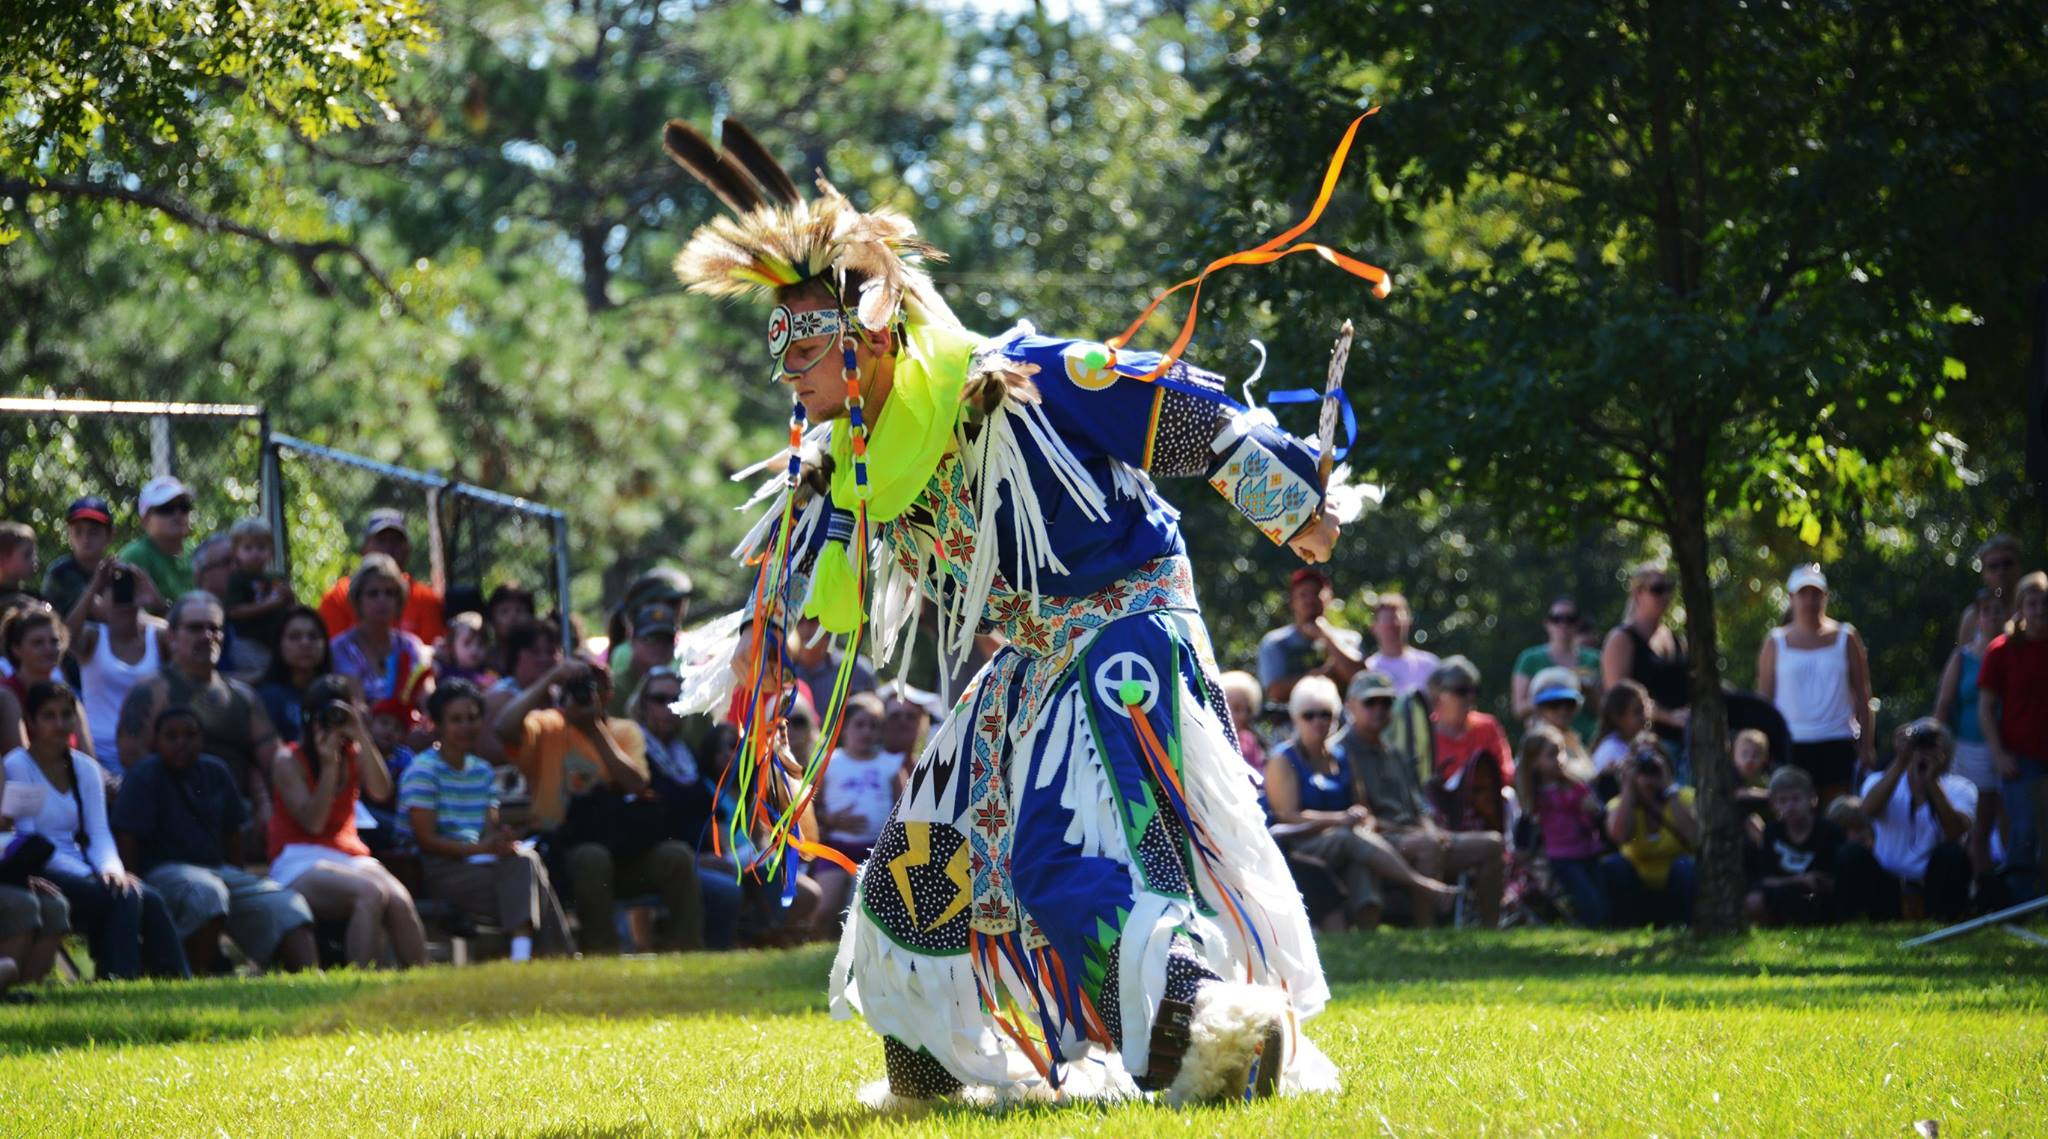 Ocmulgee Indian Celebration